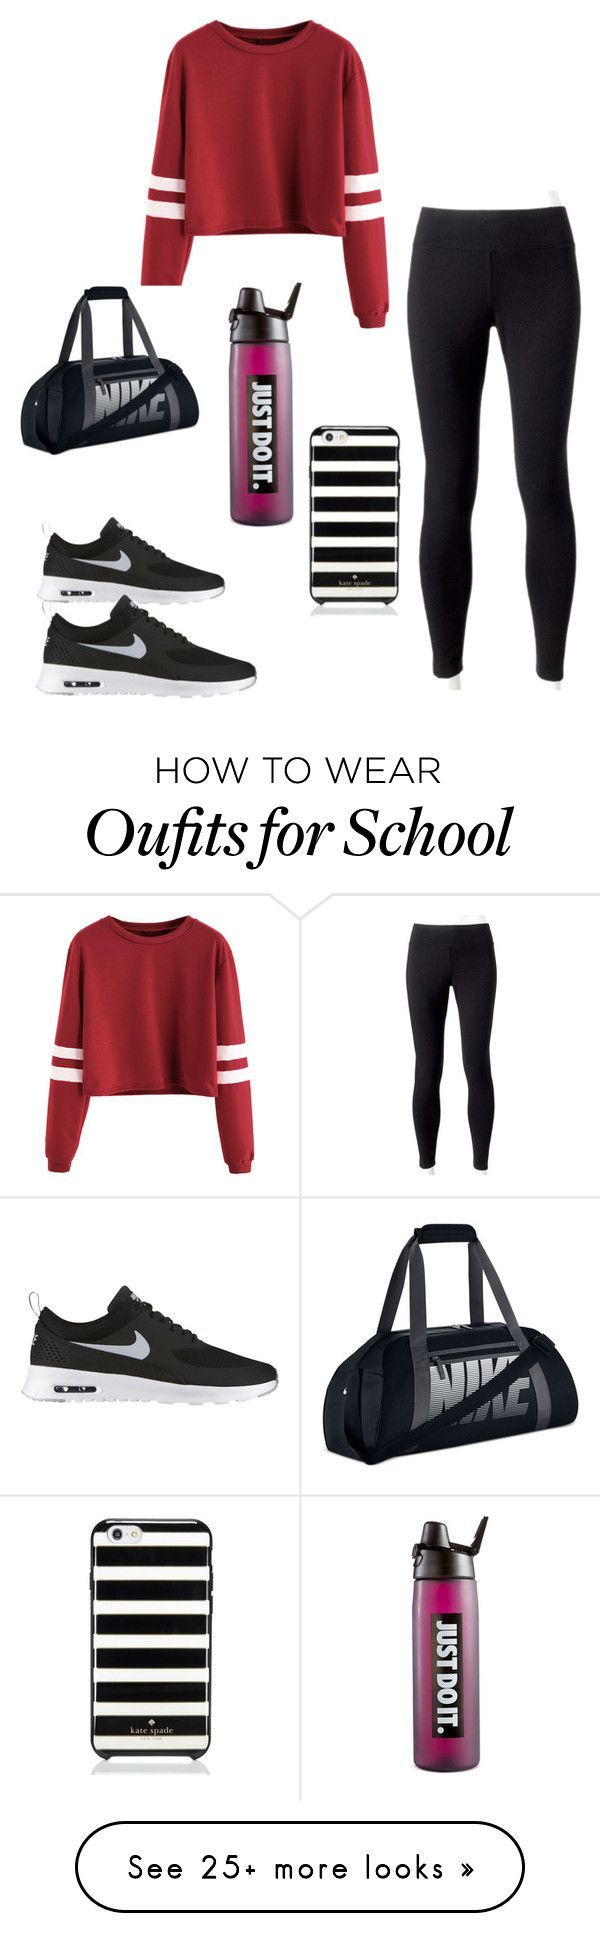 How To Wear Winter Tights 20+ Best Outfits